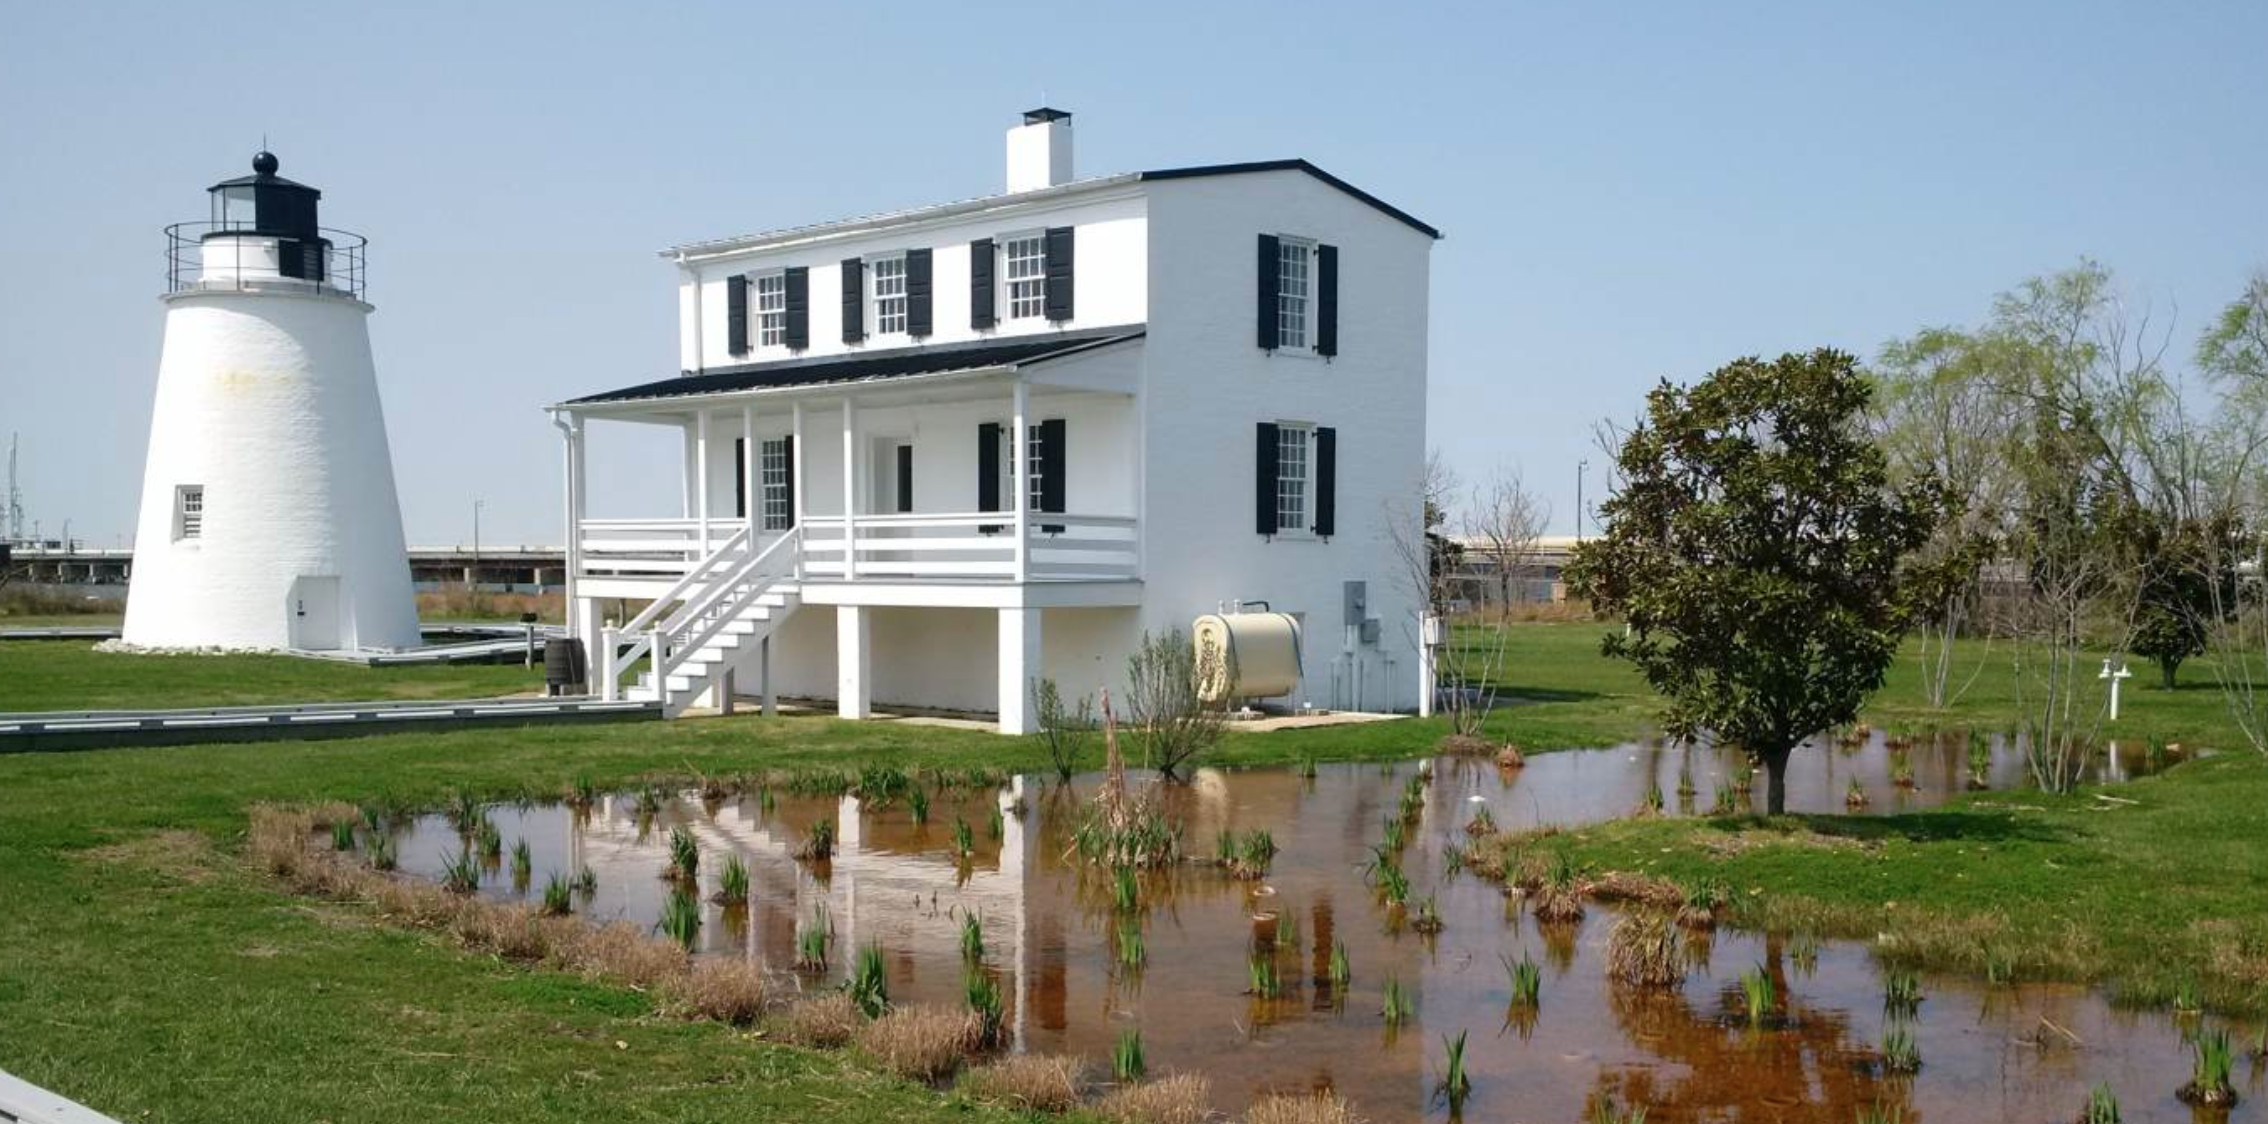 Piney Point Lighthouse Museum